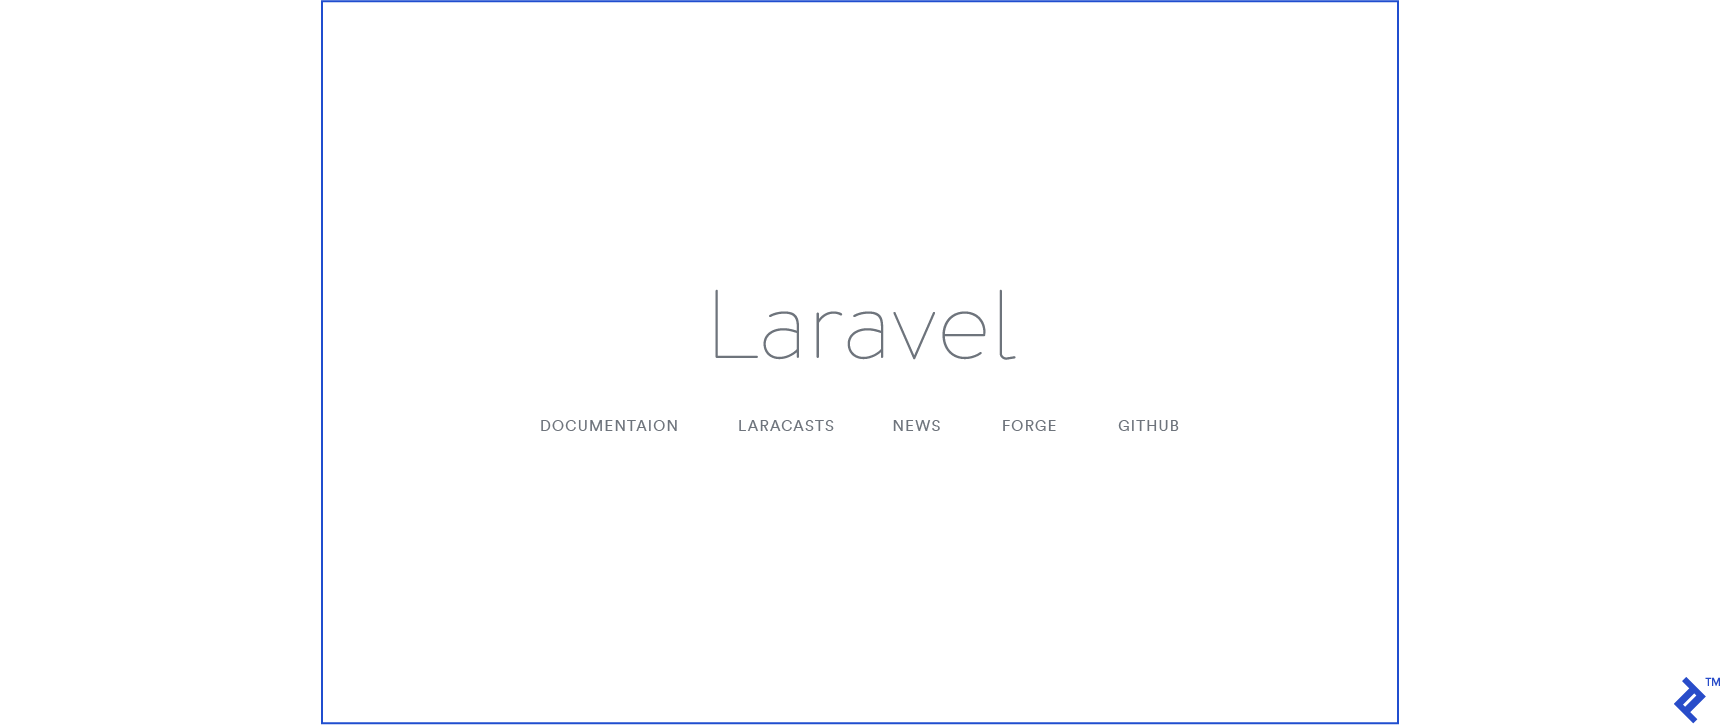 When you open localhost:8000 on your browser, you should see the Laravel sample page